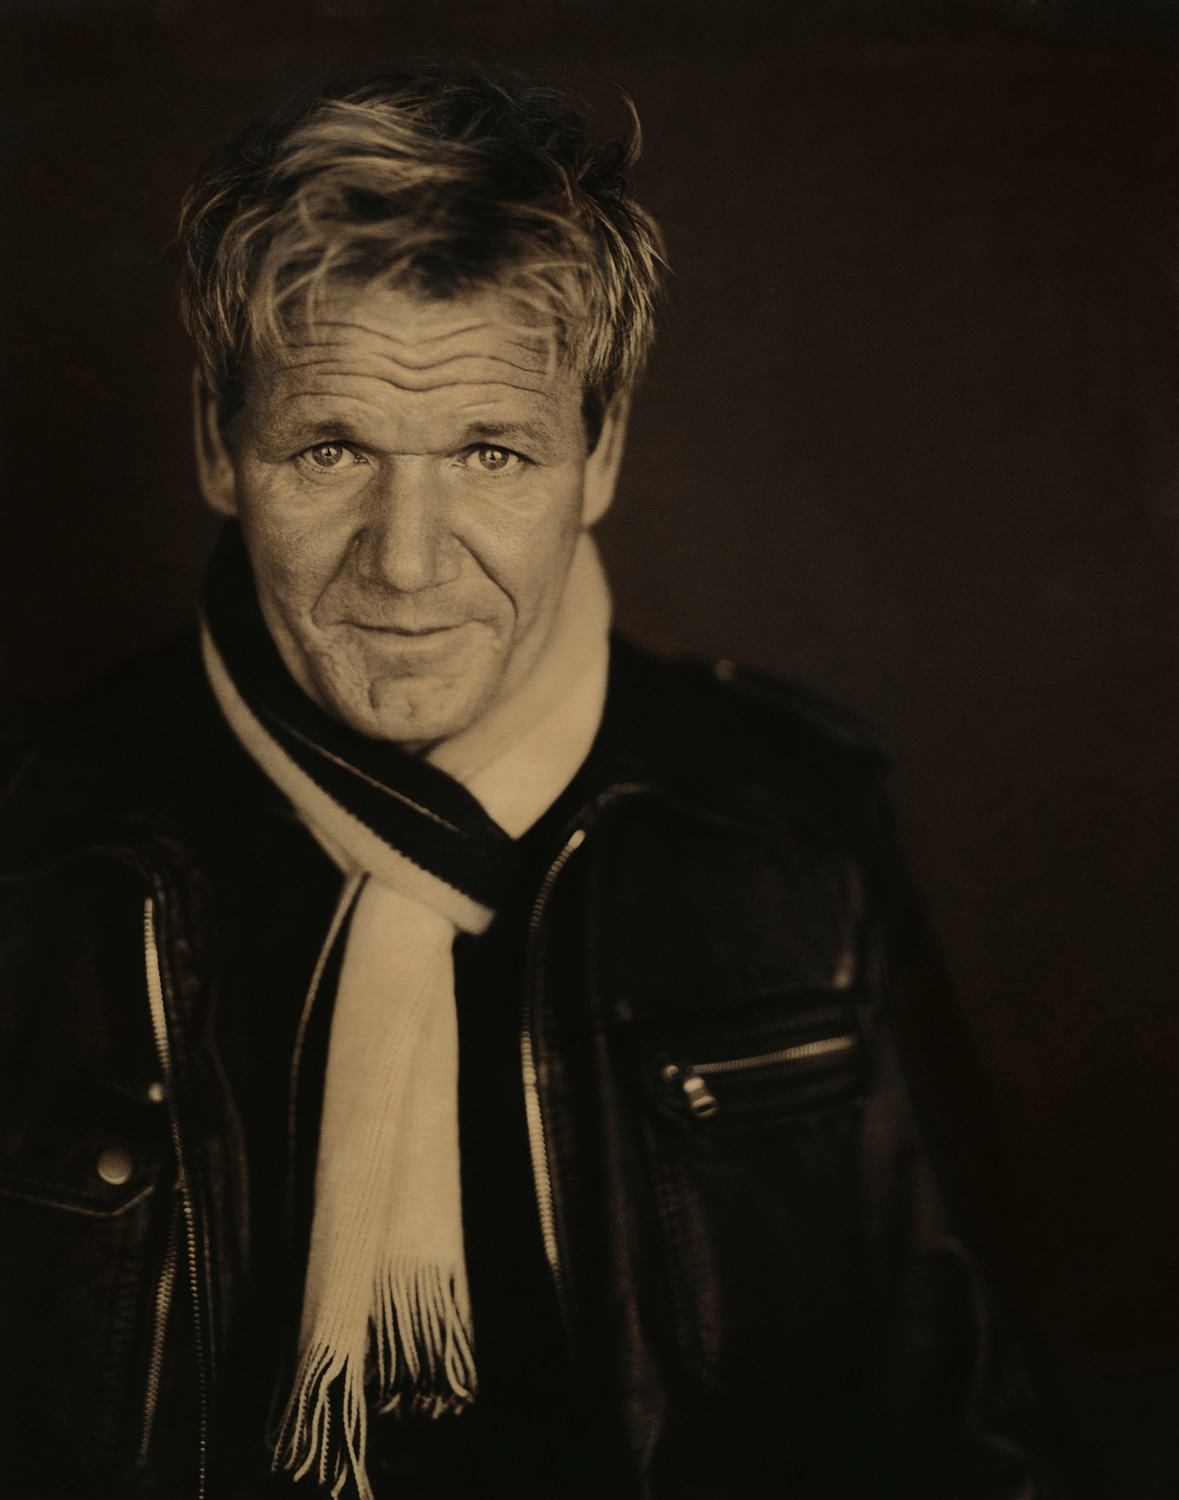 GORDON RAMSAY AT BOND STREET STUDIOS PHOTOGRAPHED BY BARRY MCCALL FOR PHO20GRAPHY